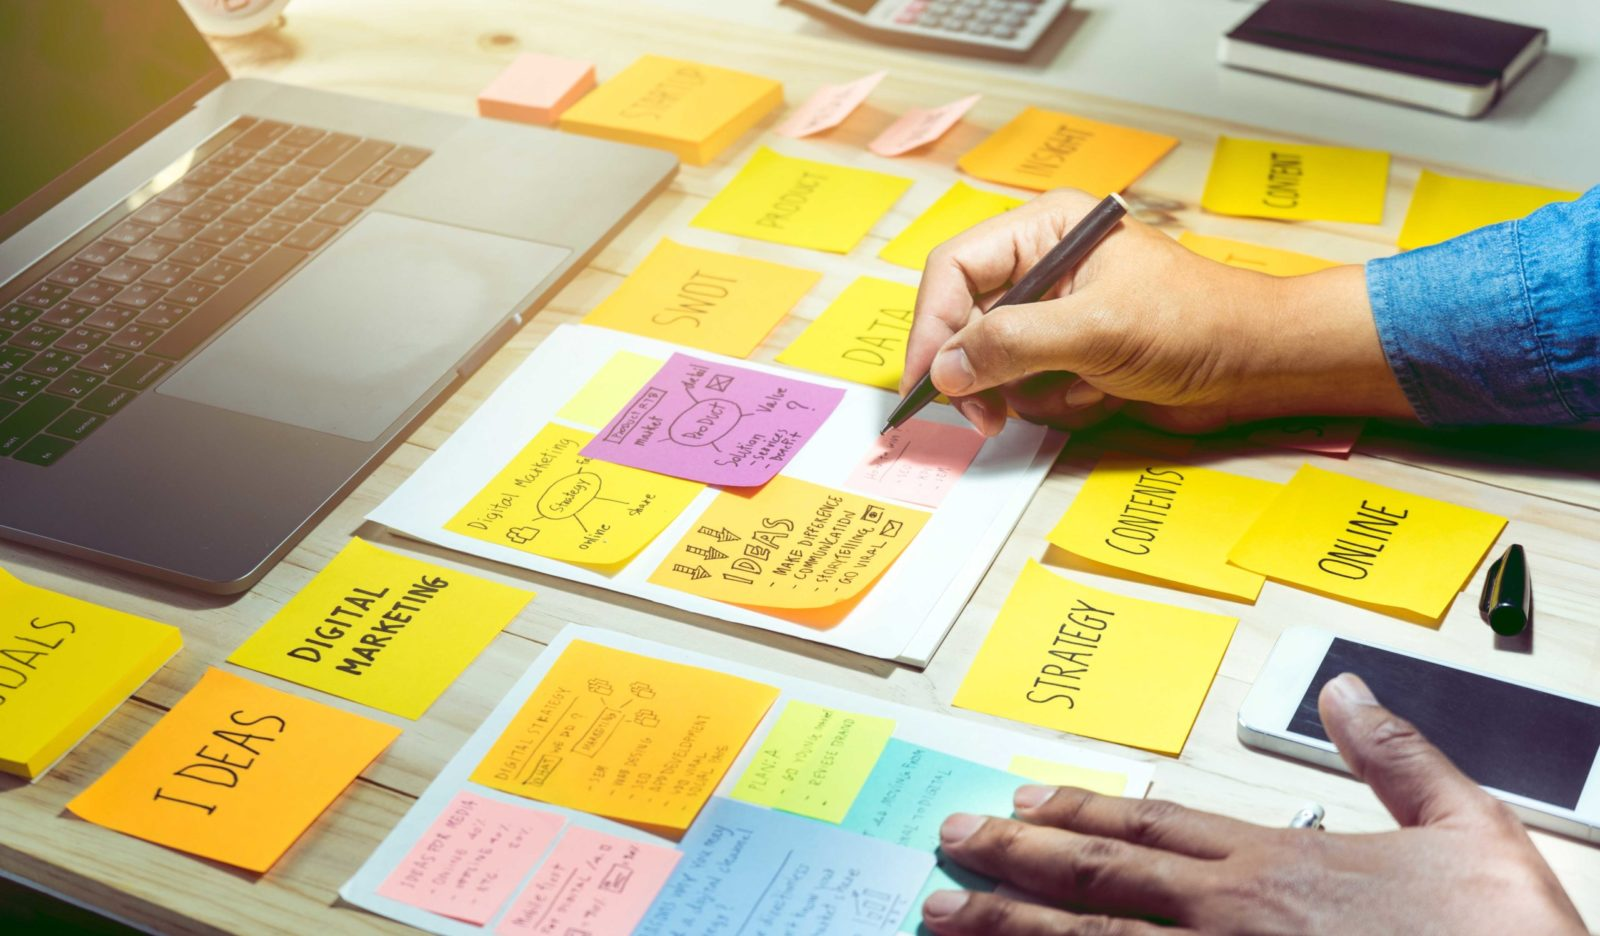 businessman working with notepaper of strategy ideas.